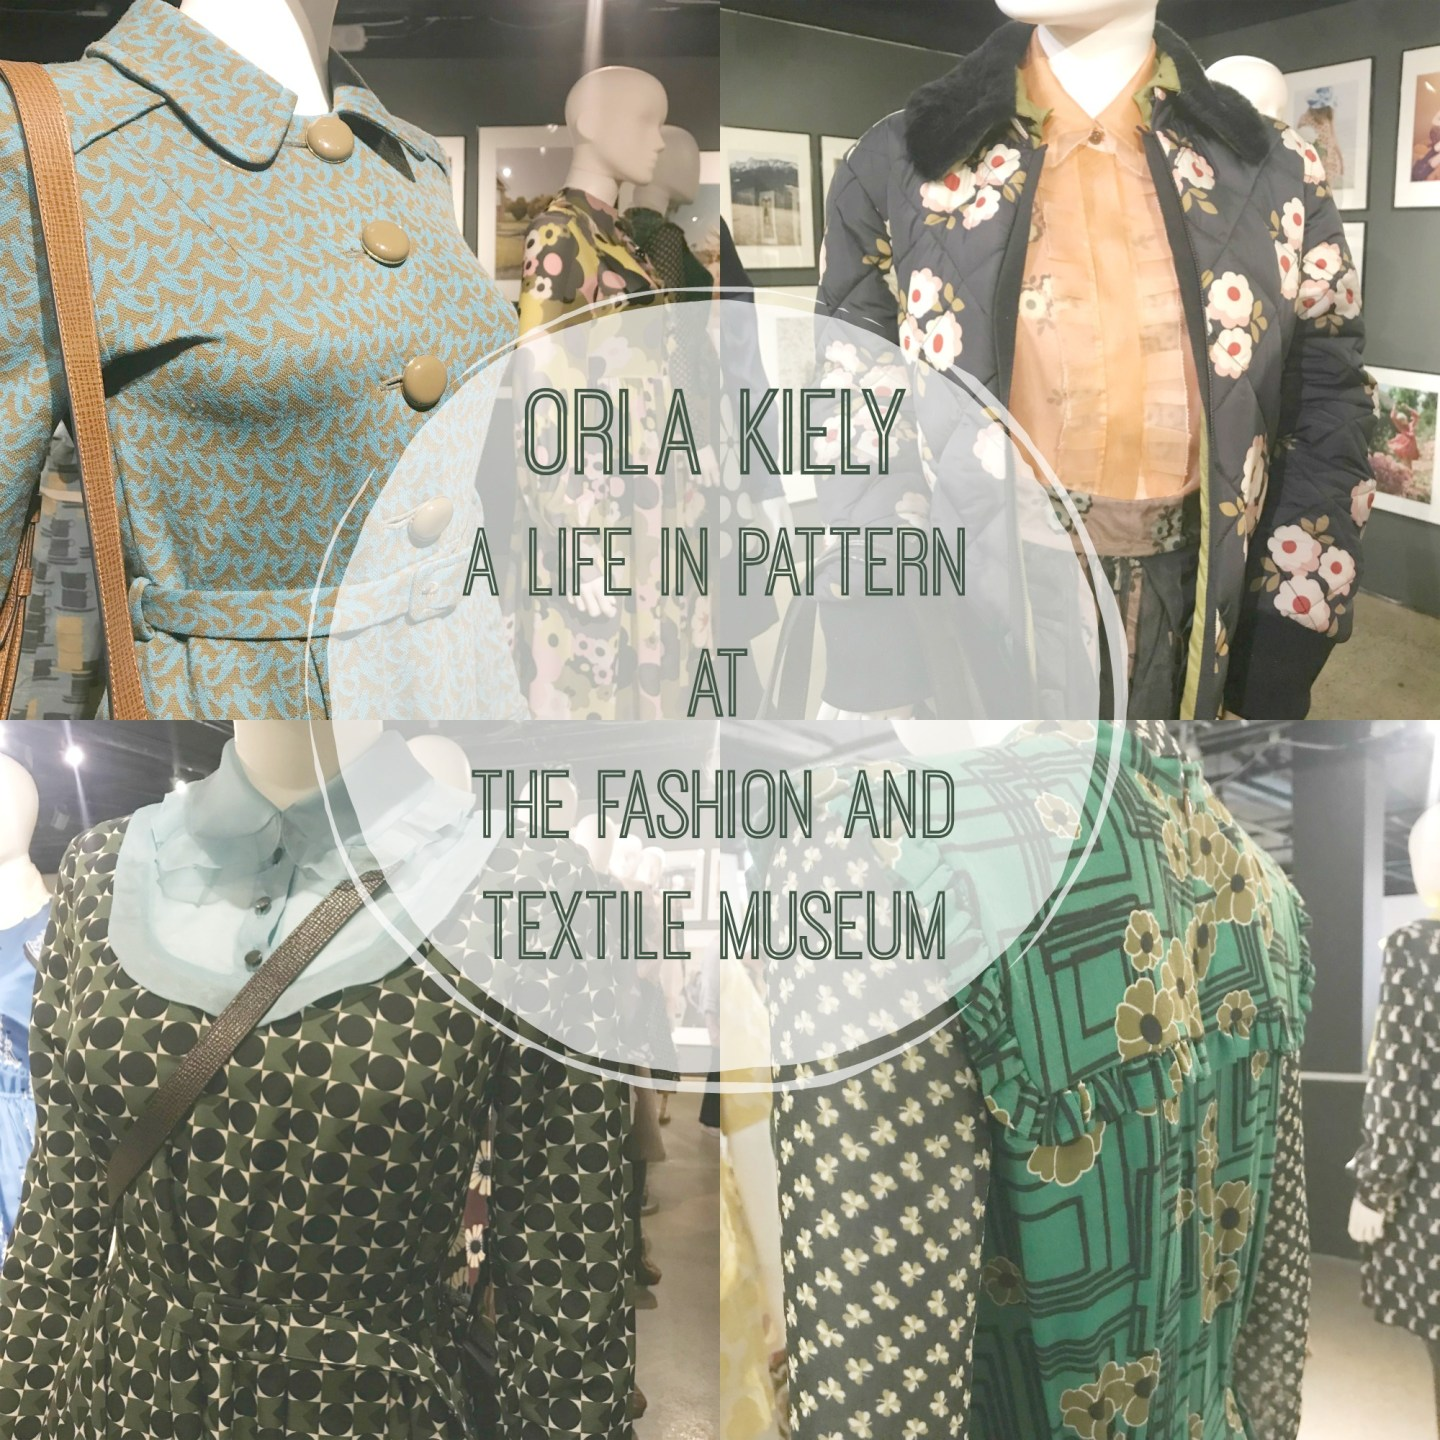 Orla Kiely A Life in Pattern at The Fashion and Textile Museum